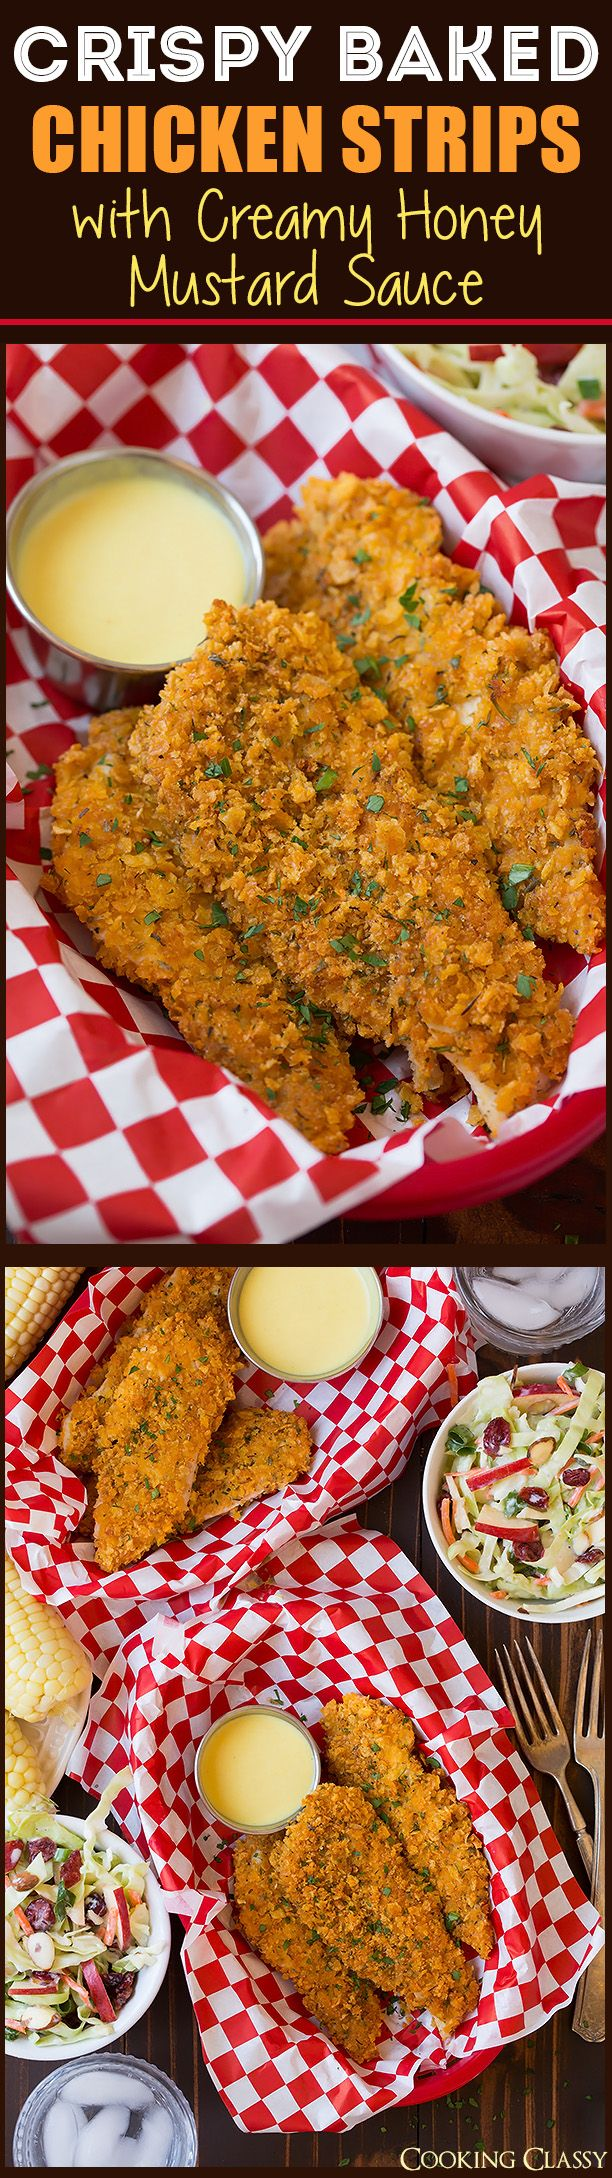 Crispy Baked Chicken Strips with Creamy Honey Mustard Dipping Sauce - Cooking Classy